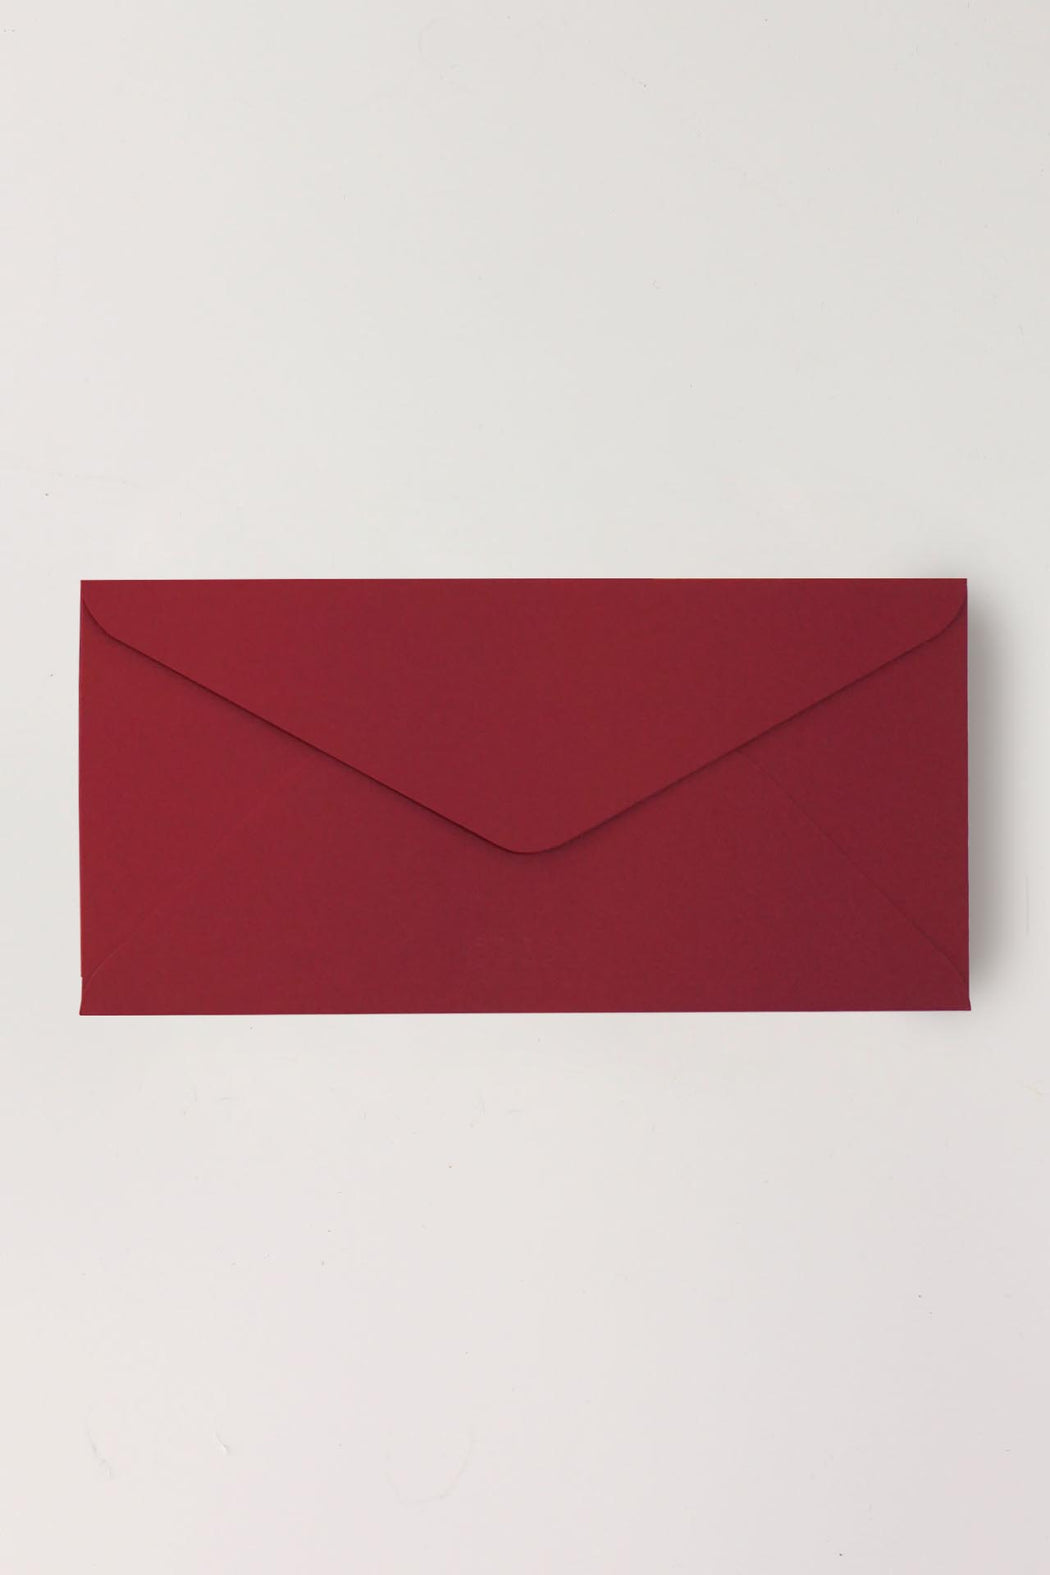 DL Scarlet Red Envelopes